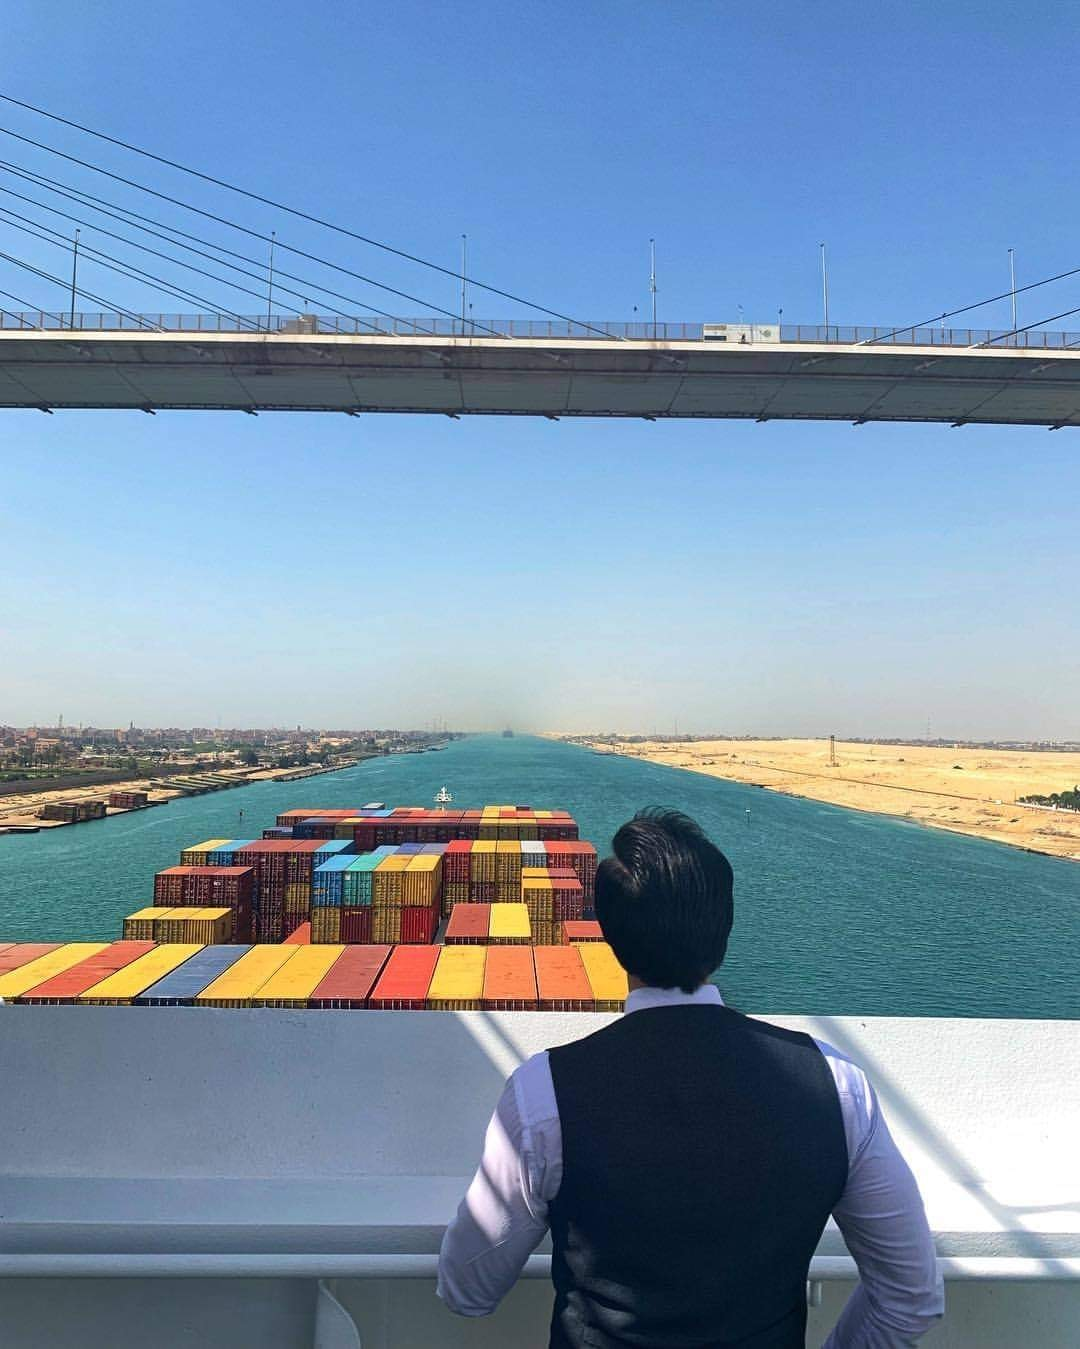 Find out the reason for the success of the delinquent ship floating in the Suez Canal